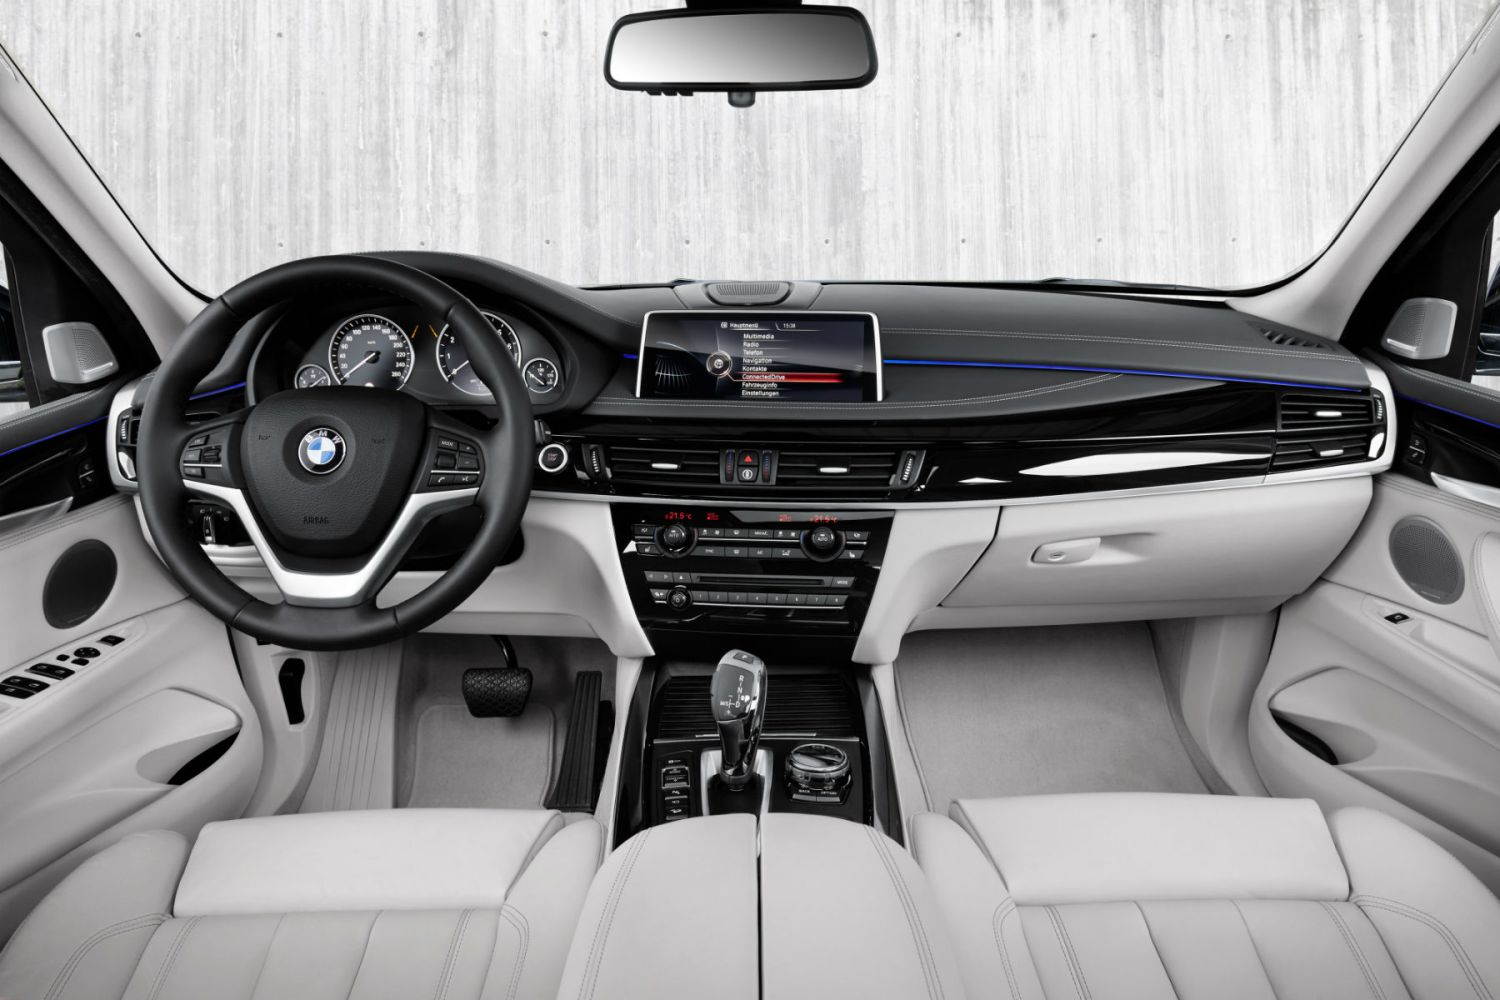 BMW X5 xDrive40e: on the inside